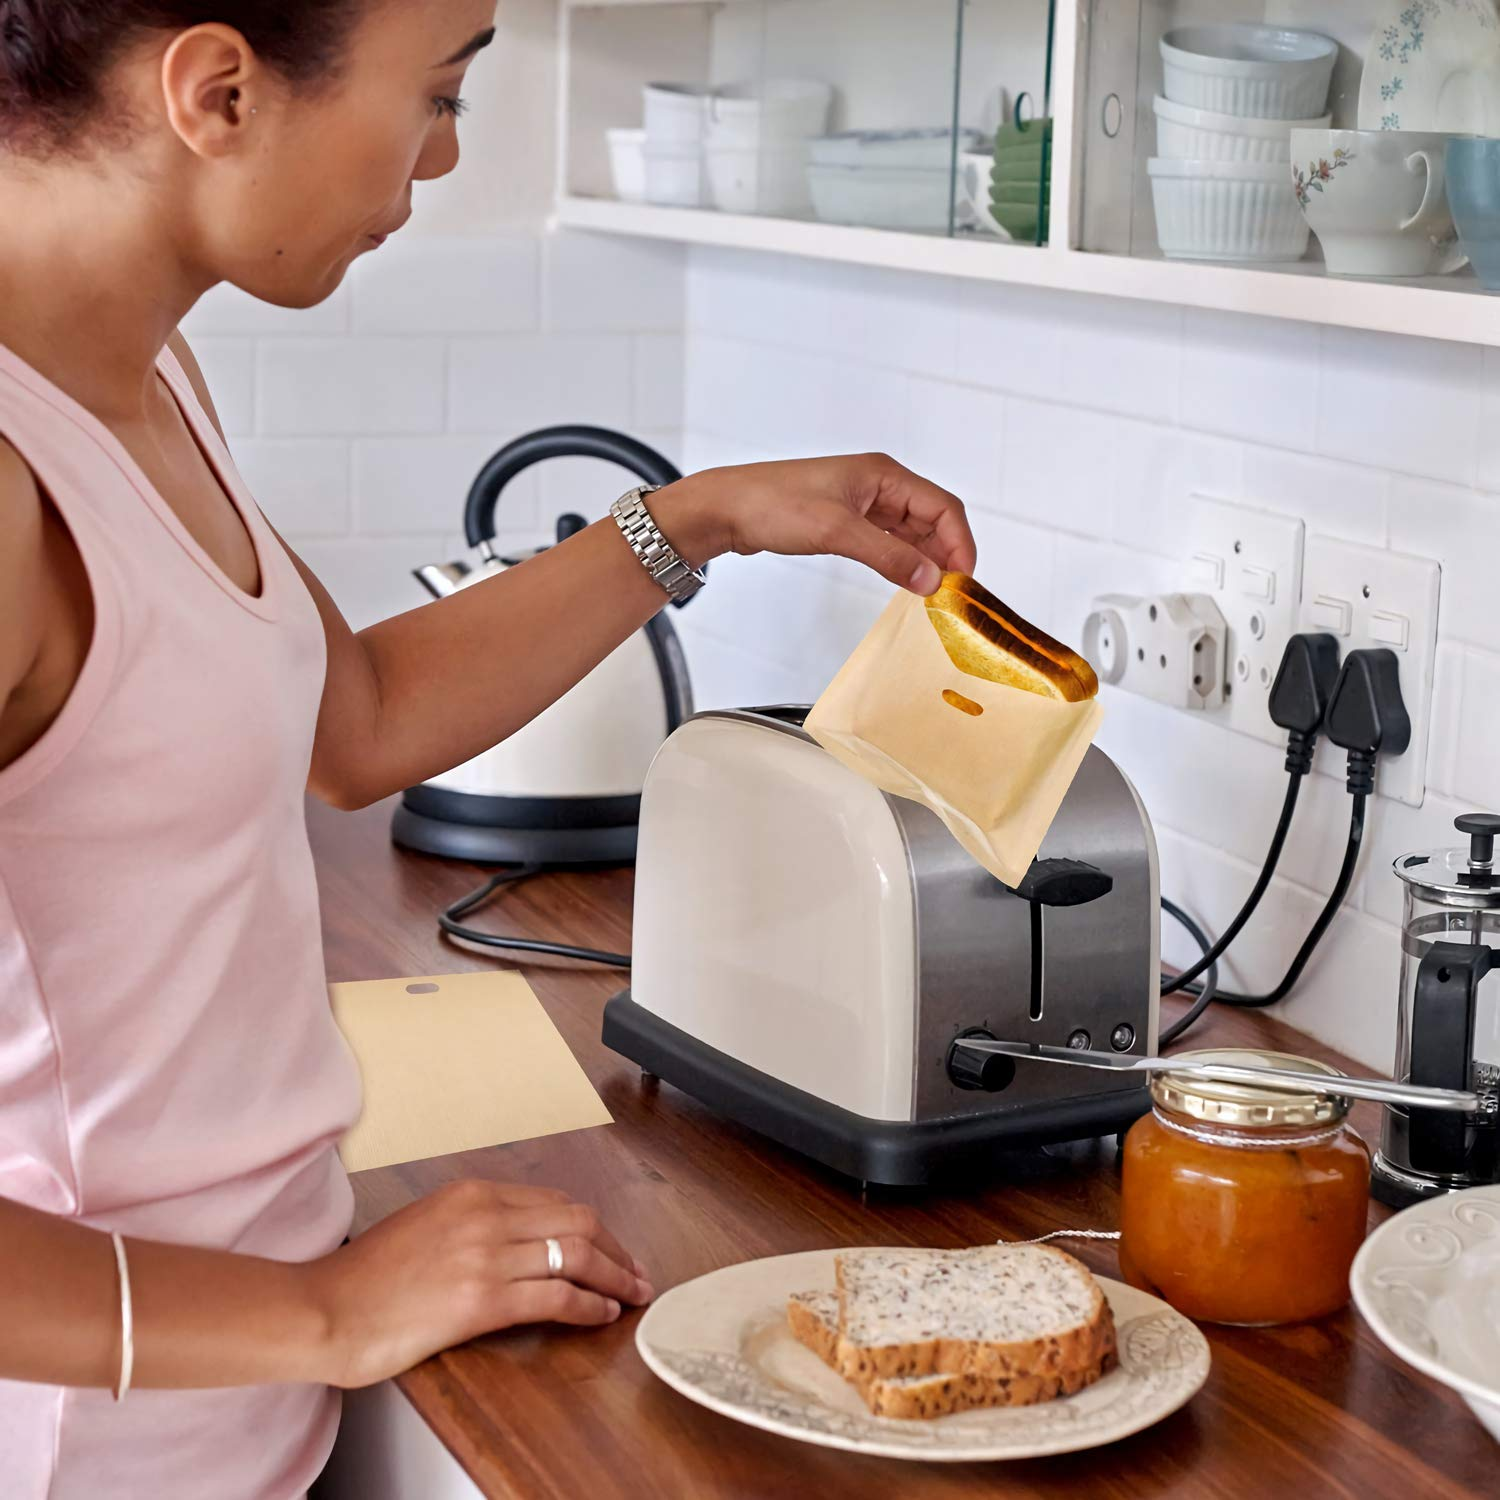 Non Stick Toaster Grilled Cheese Bags Reusable and Heat Resistant Easy to Clean, Gluten Free, FDA Approved, Perfect for Sandwiches, Chicken, Nuggets, Panini and Garlic Toasts - 10 Pcs by Famebird (Image #5)